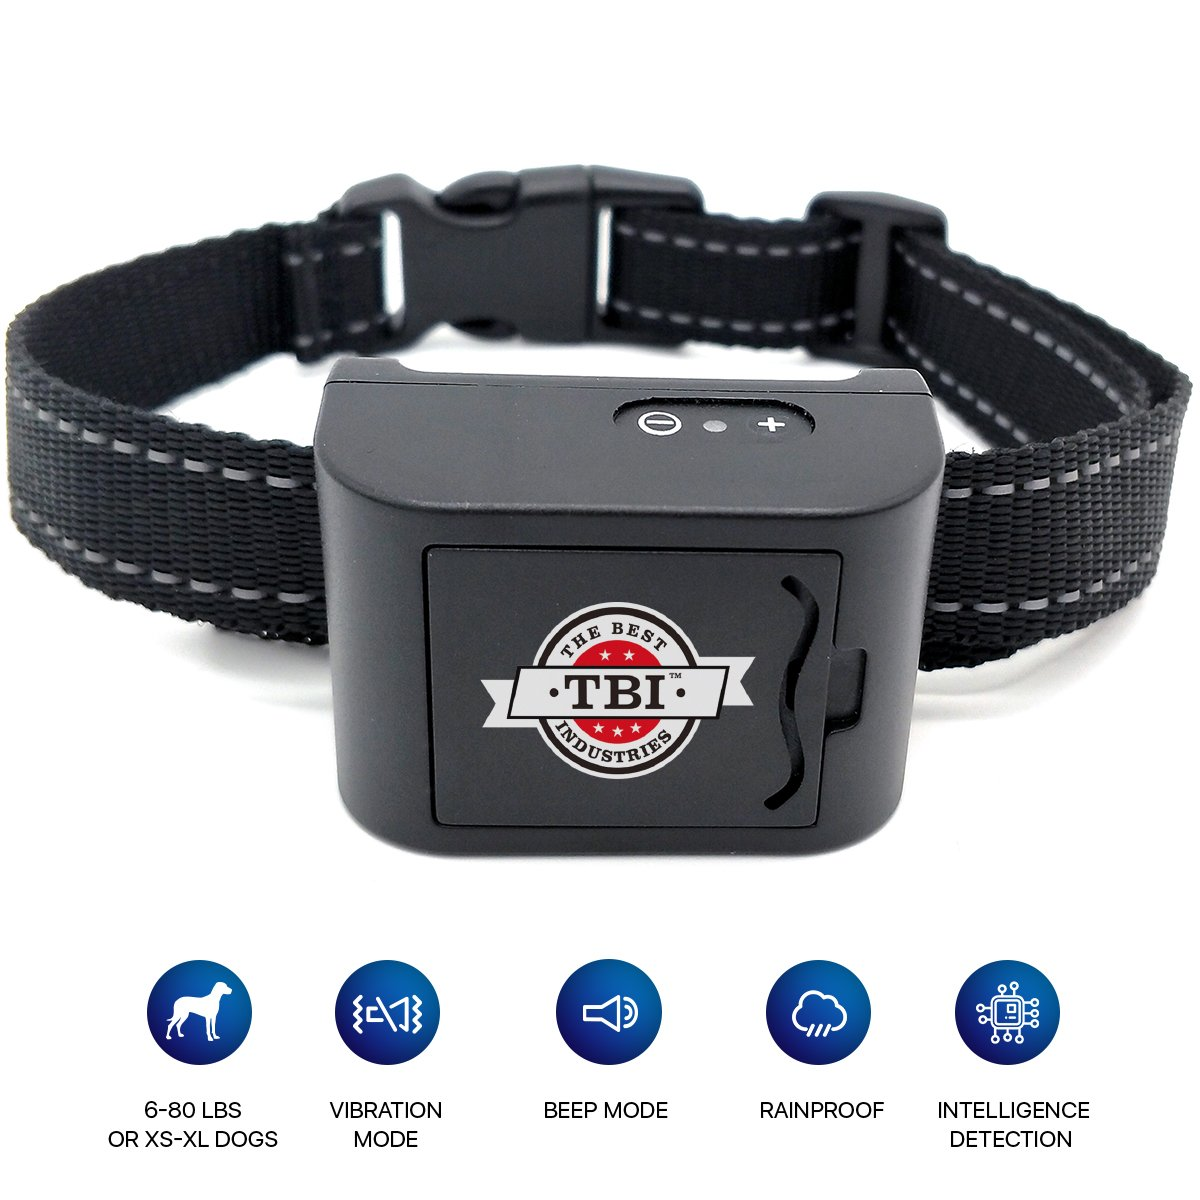 [NEW 2018 HUMANE] Bark Collar Vibration Mini for Small, Medium Dogs with NEW UPGRADED Smart Chip - Best Intelligent Dog Anti-Barking Collar w/Beep/Vibration Modes for Dogs 6-80 LBS